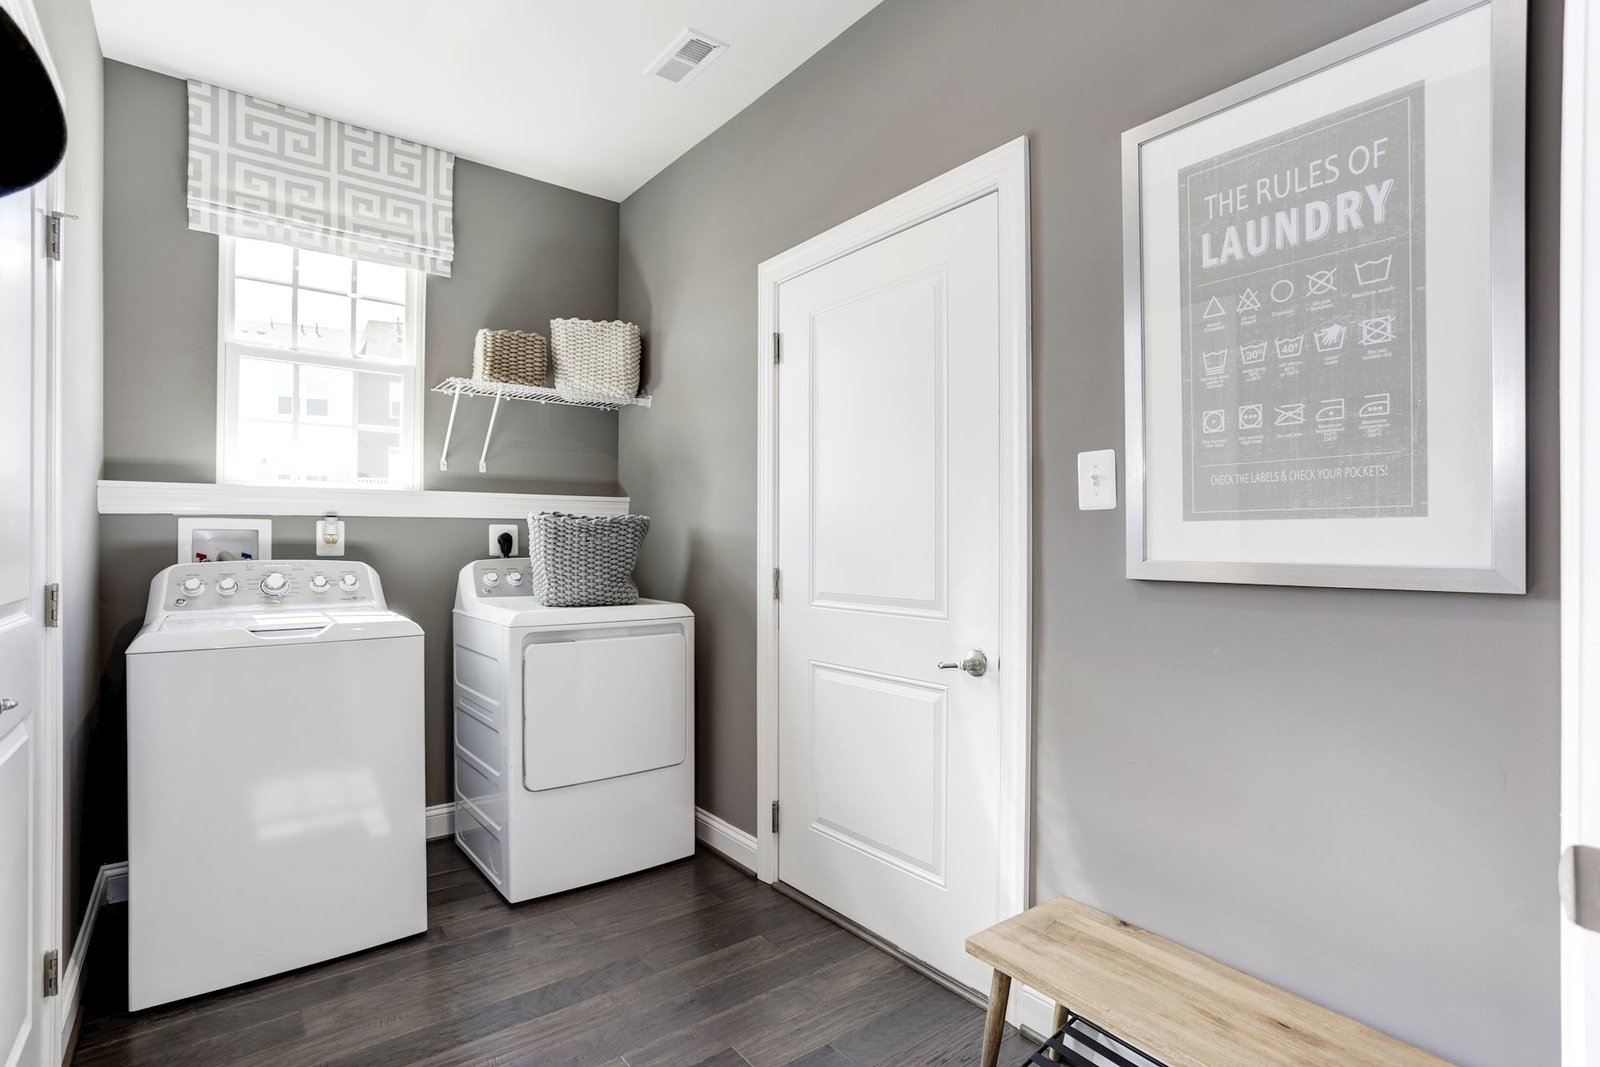 Most floorplans have a 2nd floor laundry room - your clothes begin and end their day on the second floor.